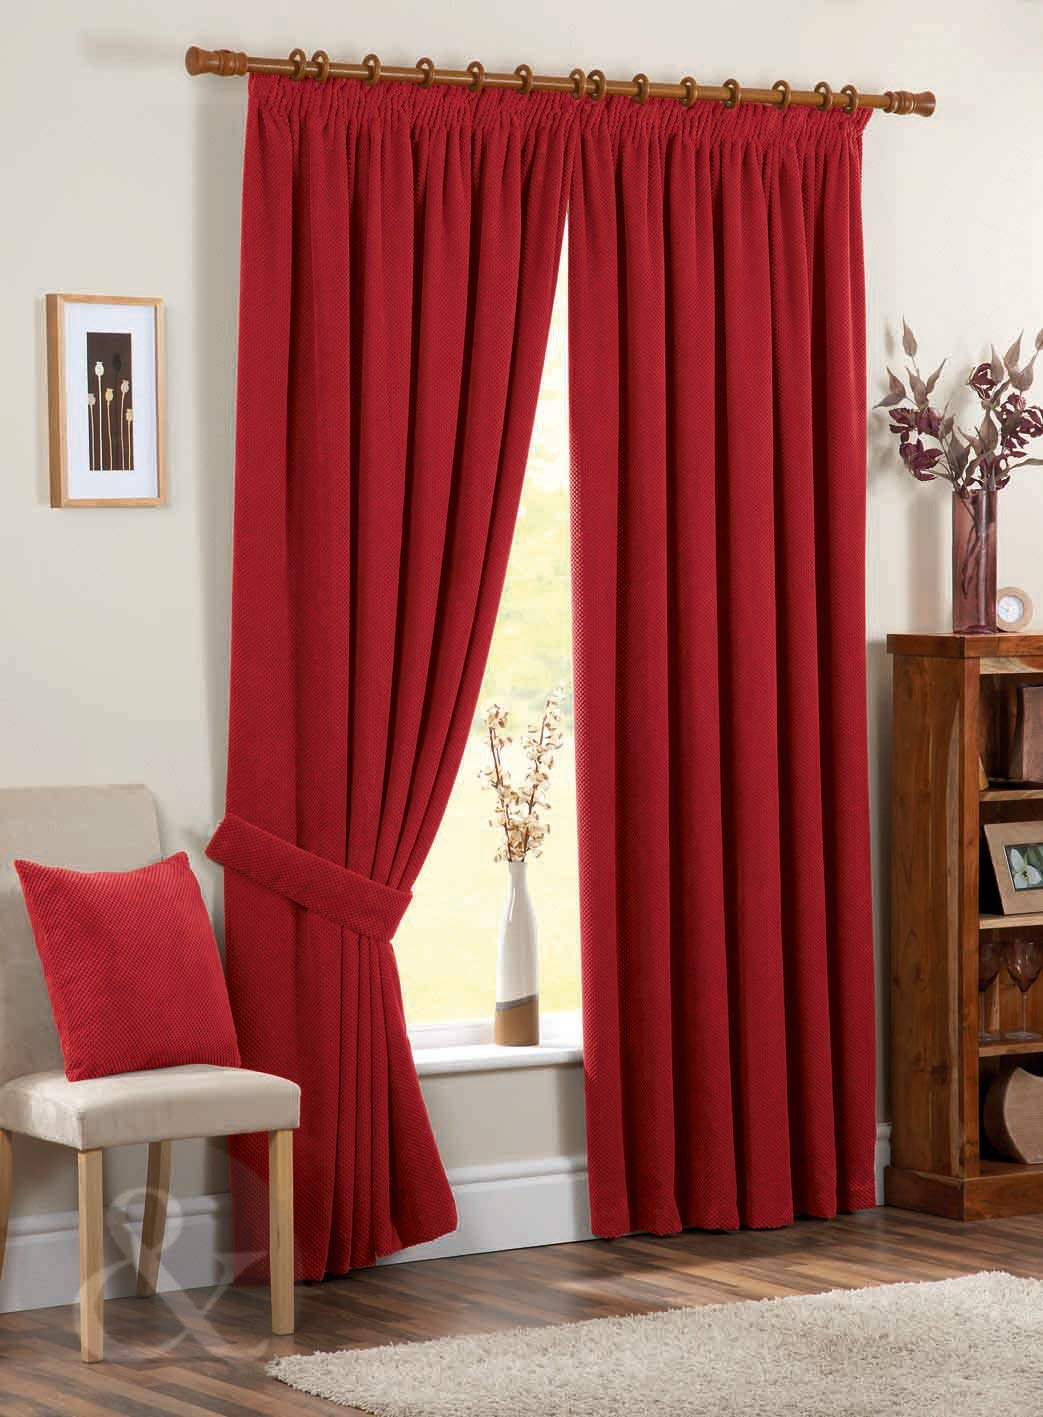 3. CHENILLE CURTAINS - Plain Pencil Pleat Fully Lined Taped Curtain Pair Red Curtain